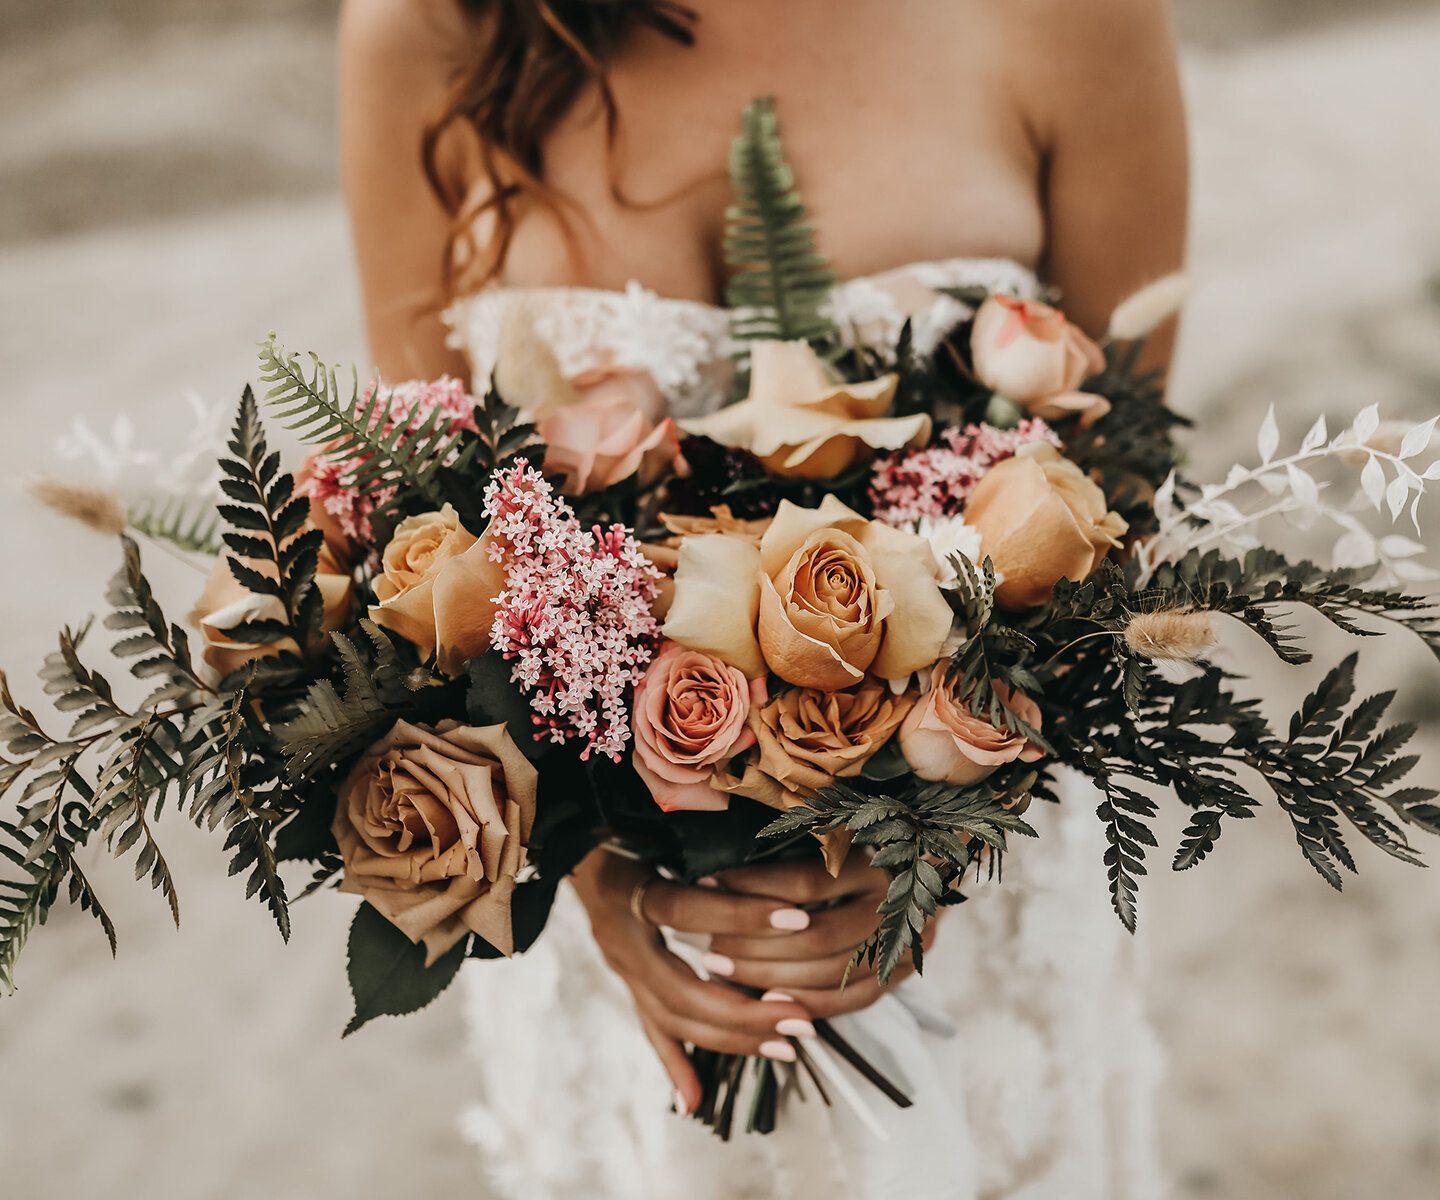 Bridal Bouquet Inspiration for Fall: 12 of the Prettiest Bouquets We've Seen This Autumn in Alberta and the Rockies